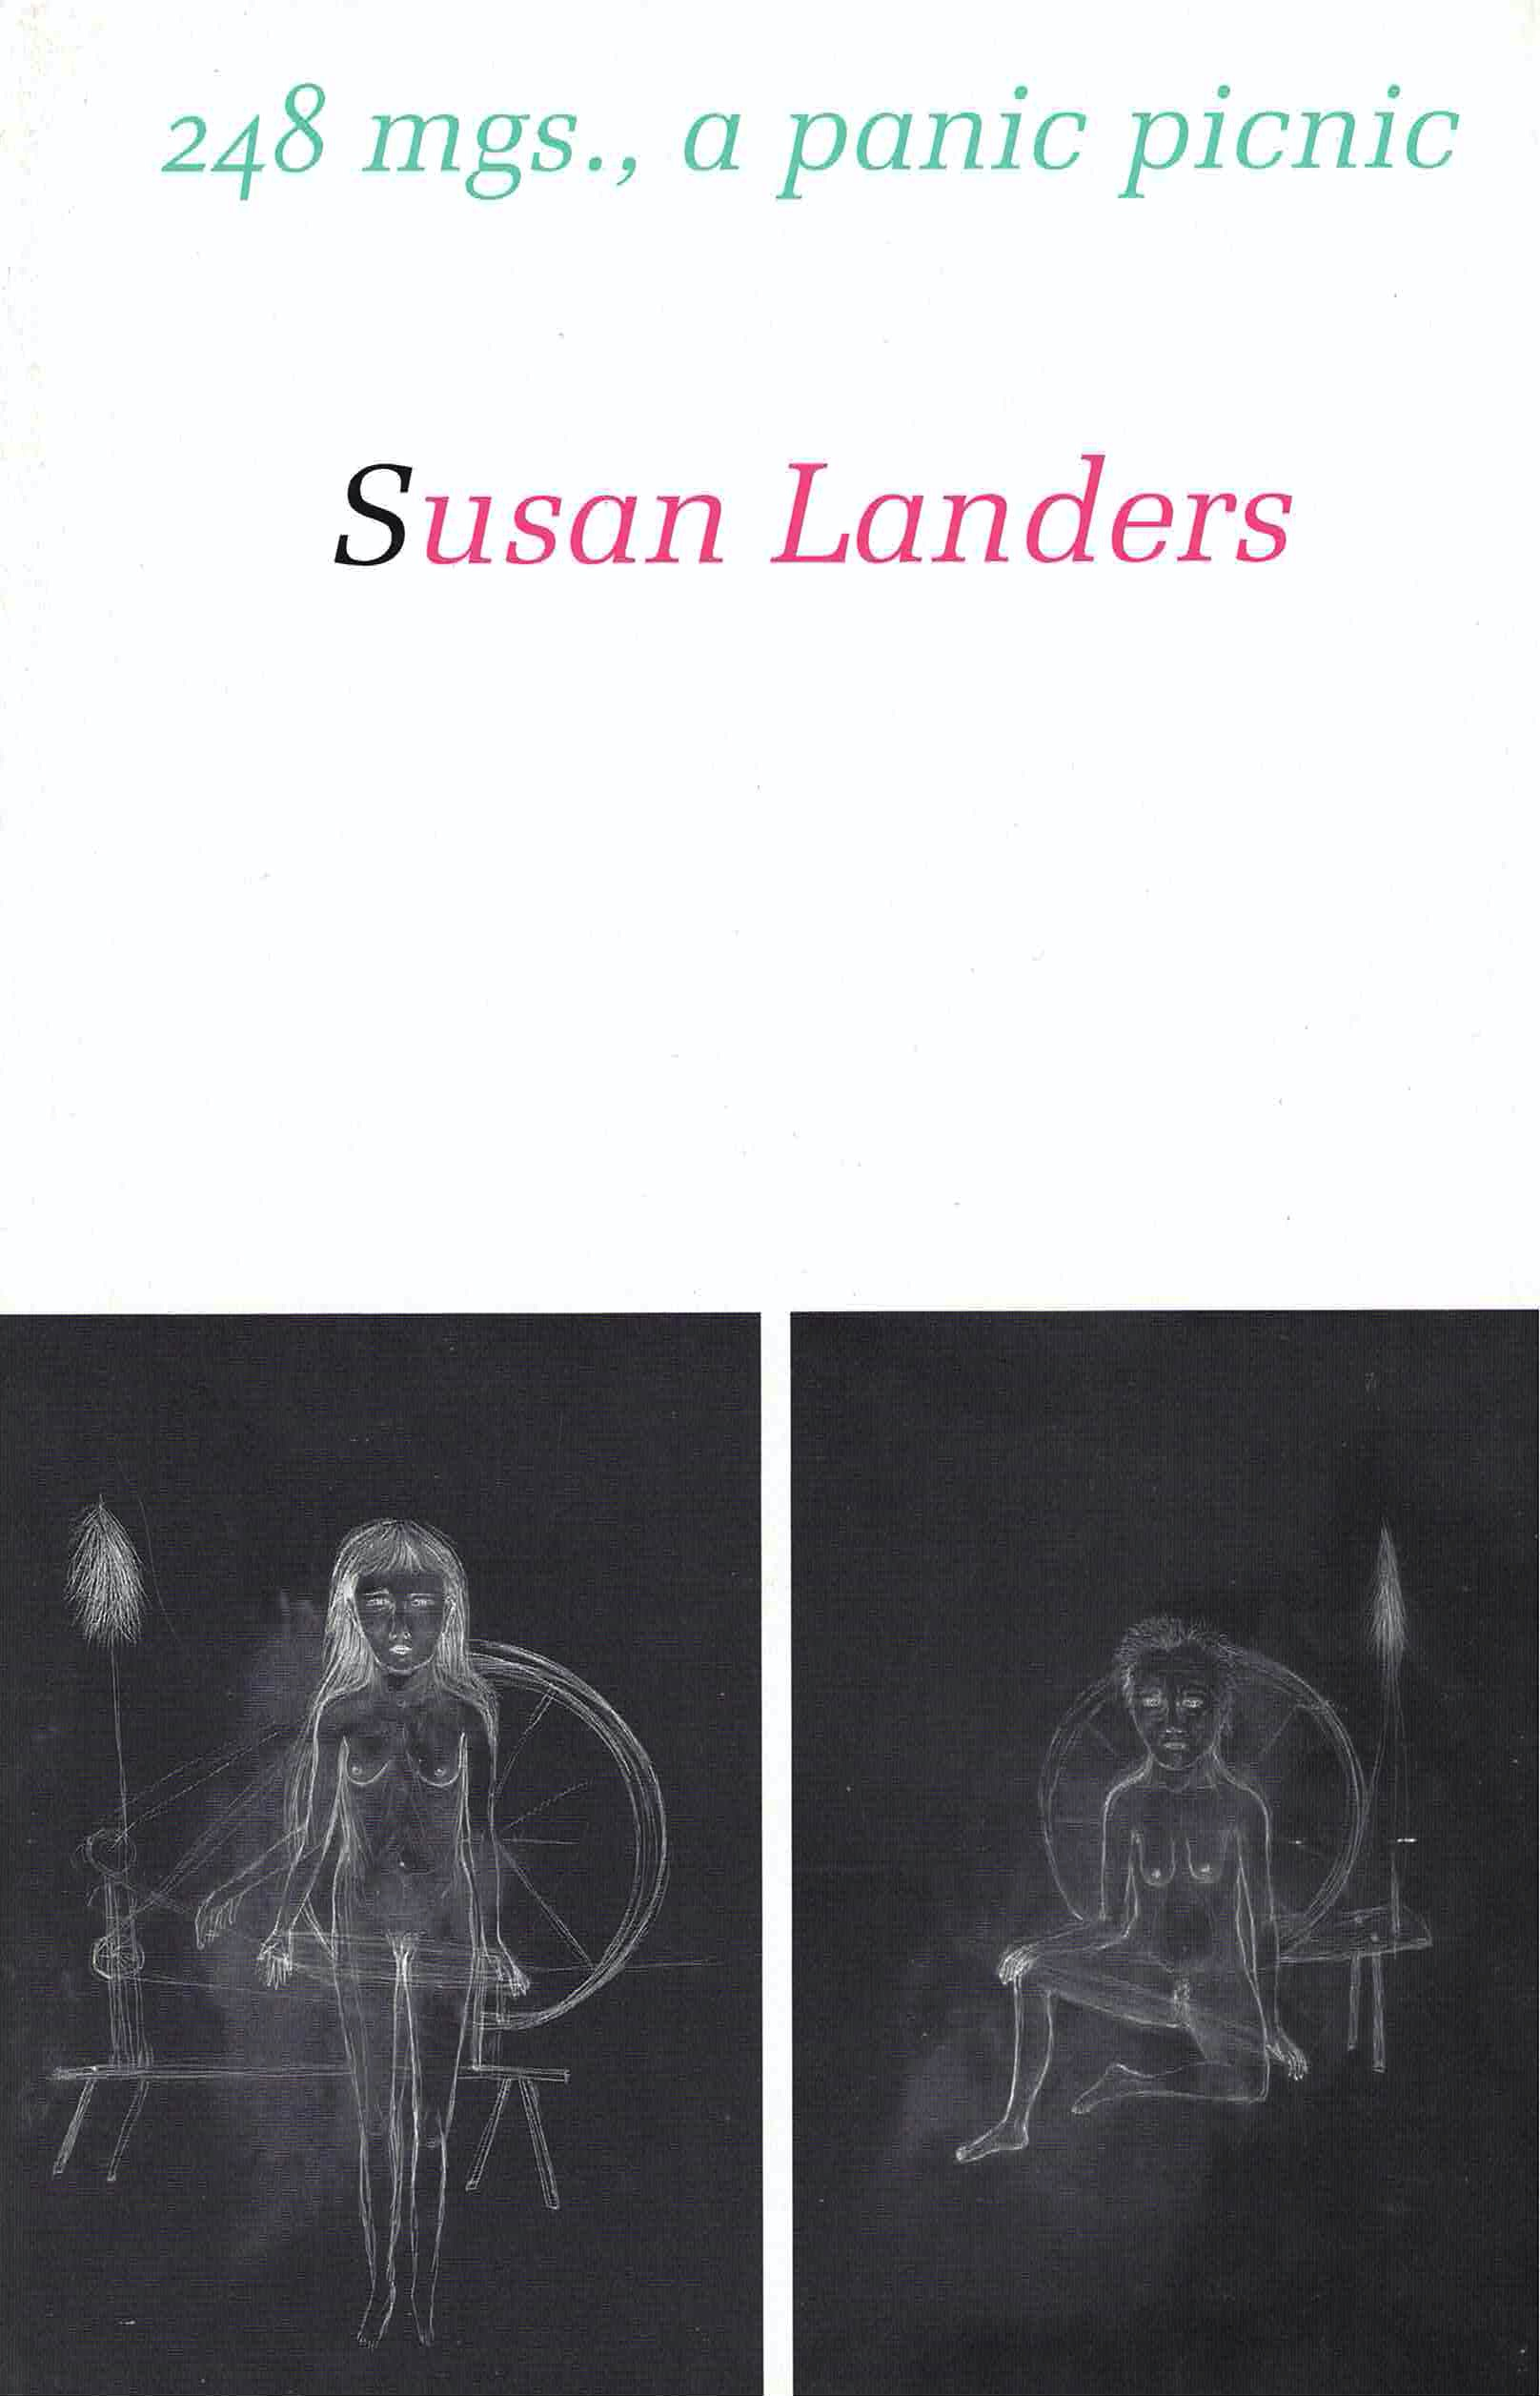 cover of 248mgs., a panic picnic by susan landers; white background with typed mint green title centered at top and author name centered in pink typing below, centered at bottom are two vertical rectangular images with black background, drawn in think white lines, each of the figure of a woman in the nude in front of a spinning wheel